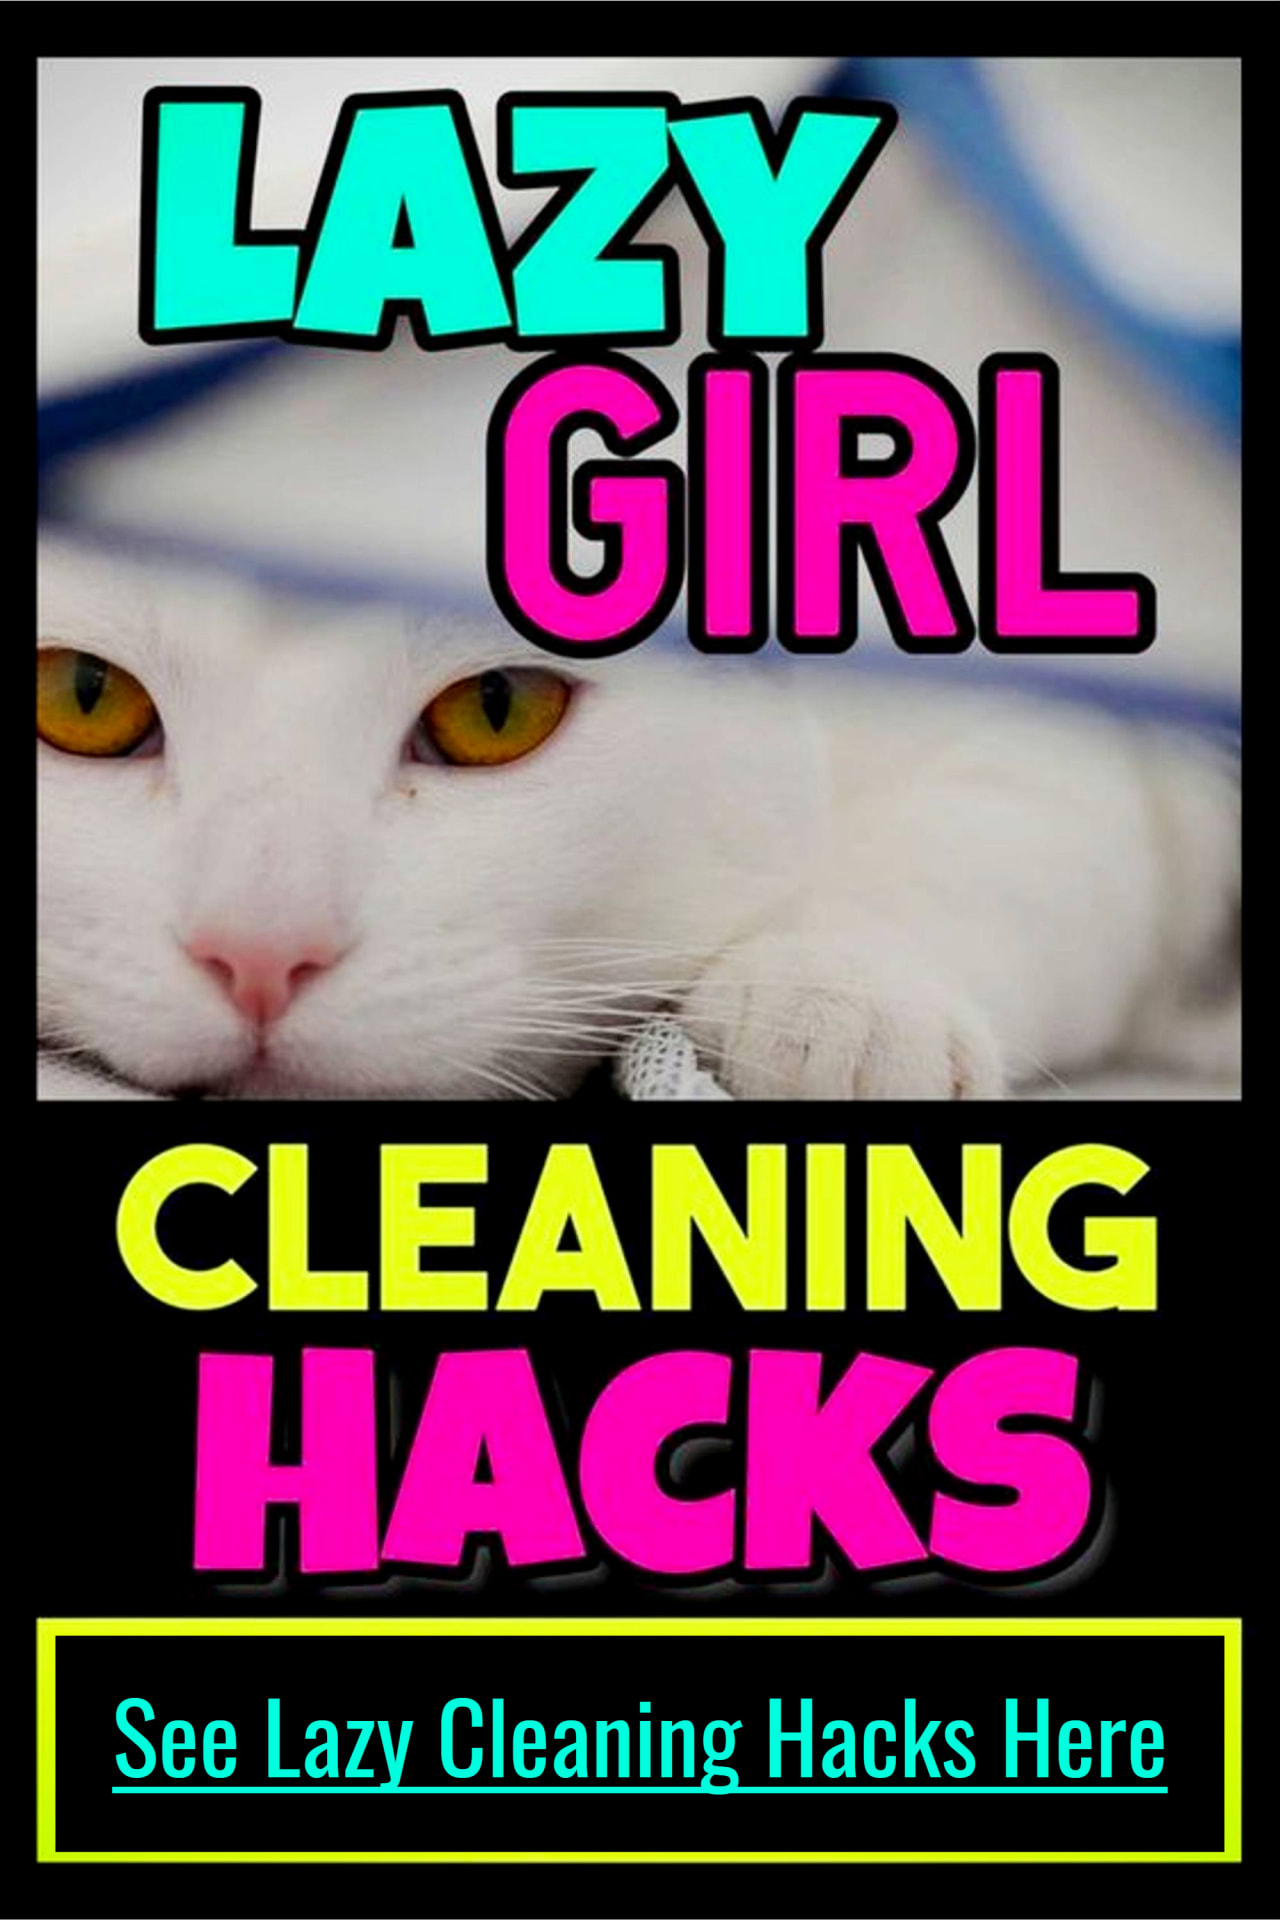 Lazy cleaning tips and cleaning hacks to clean a messy cluttered house FAST - even if feeling overwhelmed